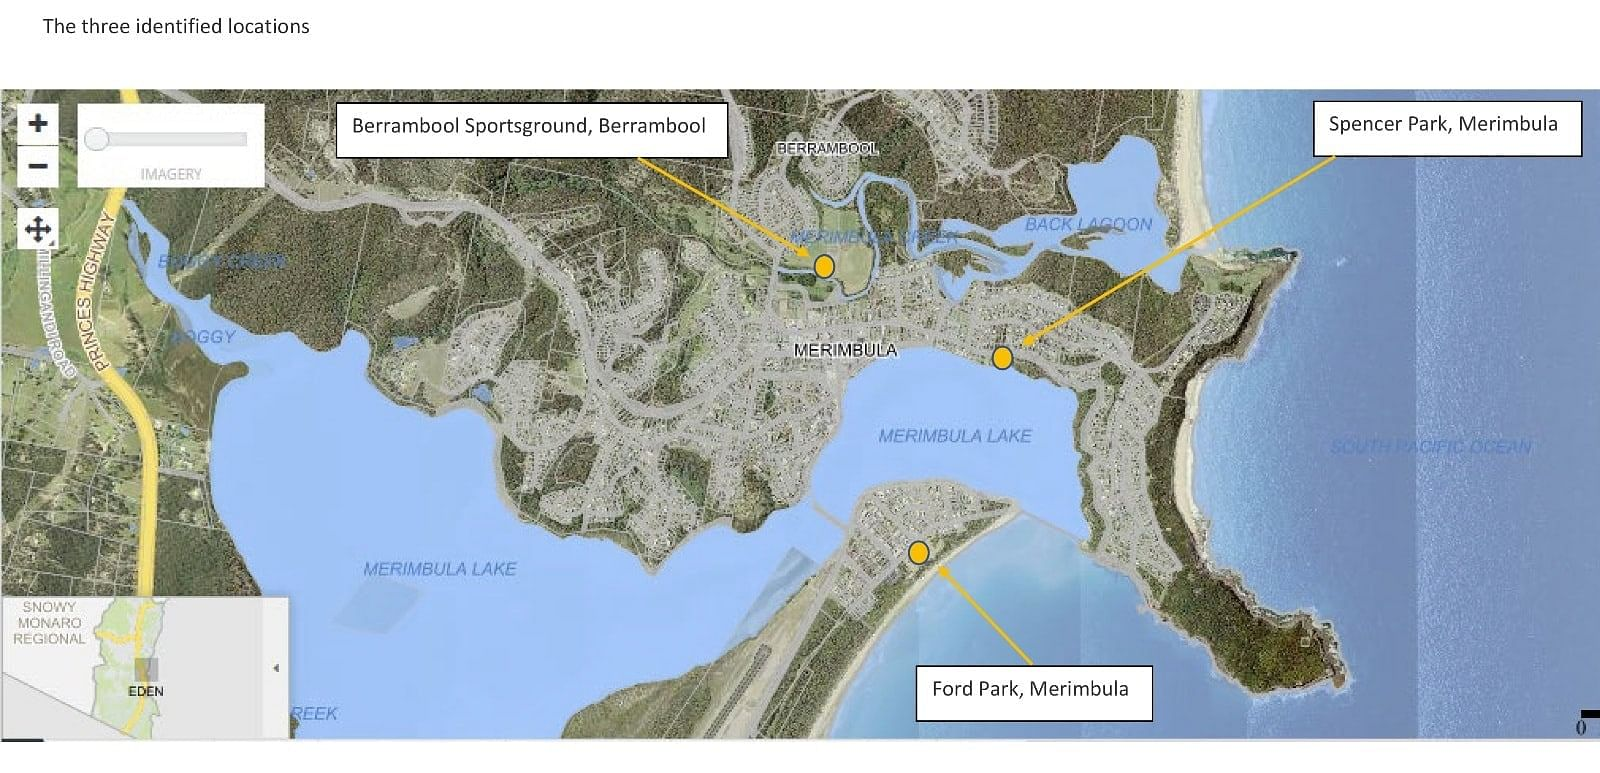 Map of three suggested locations for Merimbula skatepark.